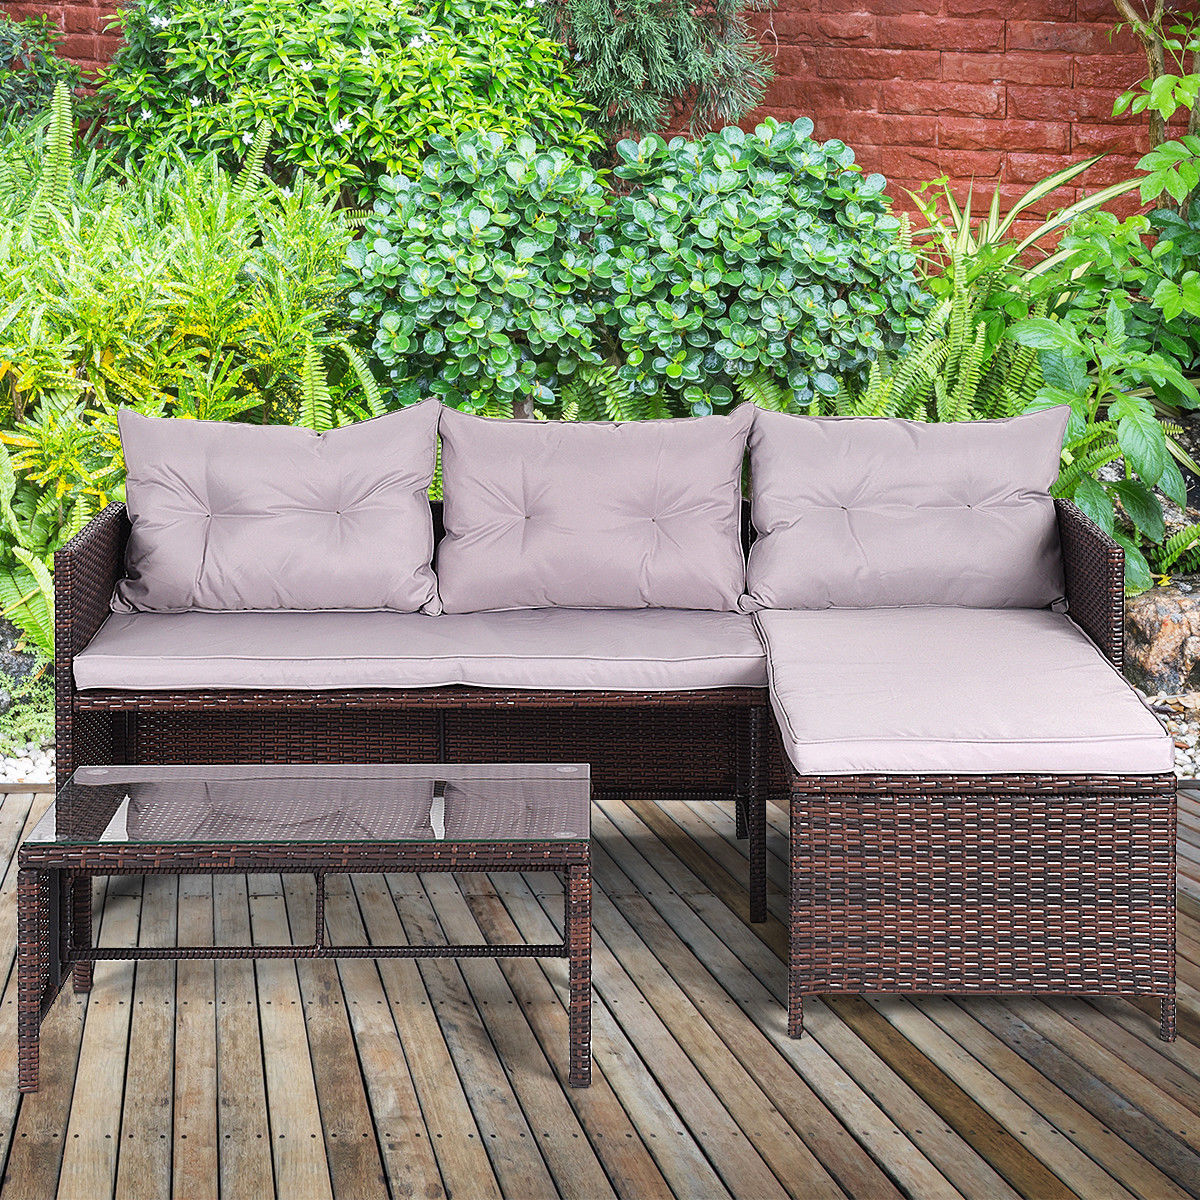 Costway 3 PCS Outdoor Rattan Furniture Sofa Set Lounge Chaise Cushioned  Patio Garden New Image 3